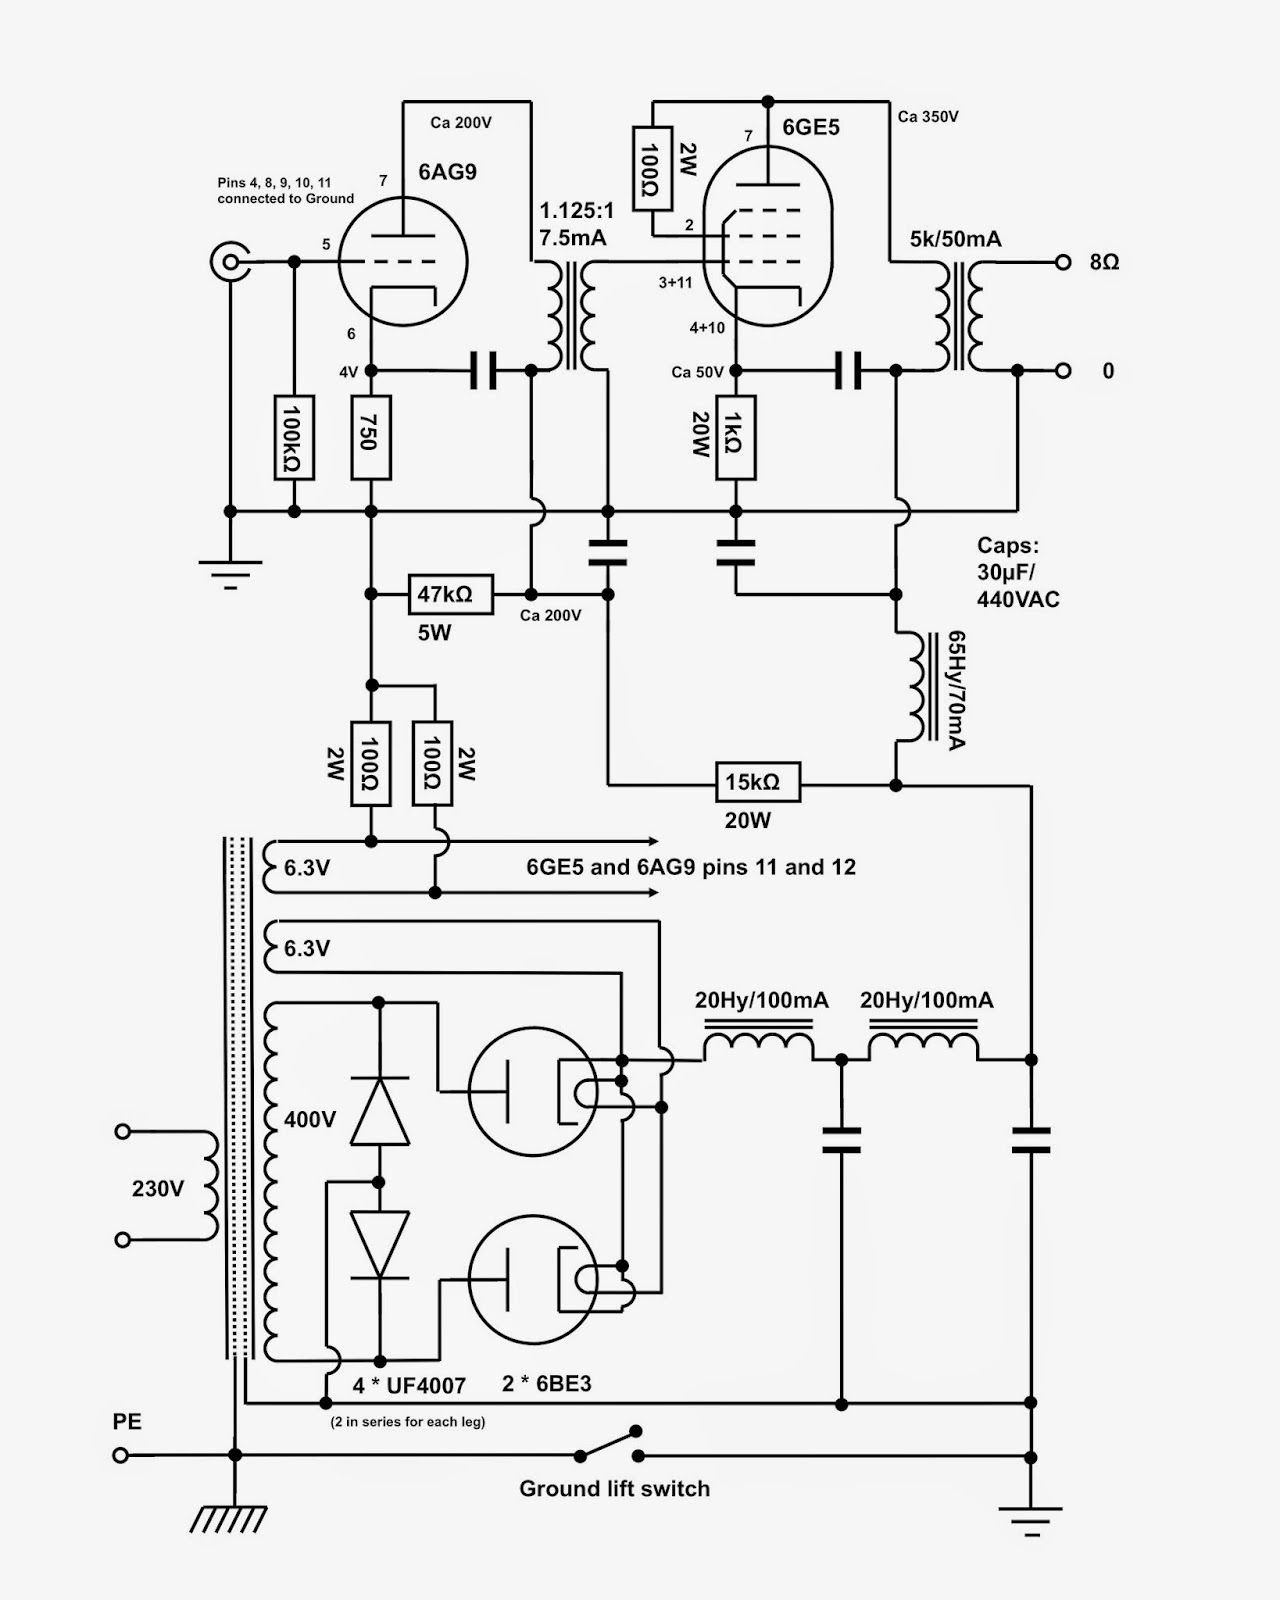 Lm358 Op   Issues together with Wiring Diagram Golf 4 1 6 further Single Dual Coil Subwoofer Wiring Diagram furthermore Up 4 Channel  lifier Wiring Basics together with 2 Svc 4 Ohm Sub Bridged 2 Svc 8 Ohm Sub Bridged 2 Dvc 2 Ohm. on mono amp wiring diagram